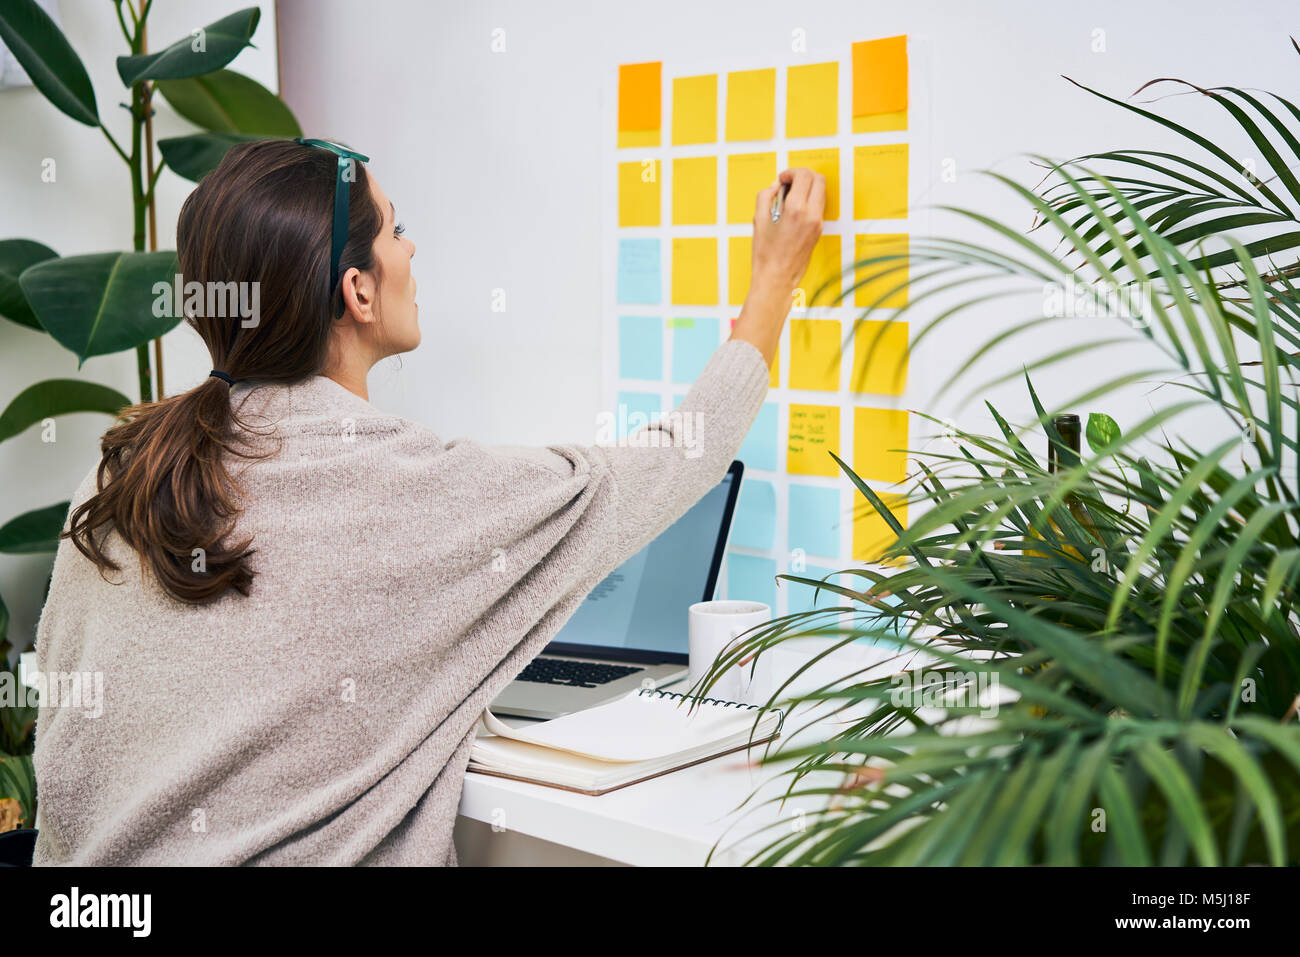 Young woman with laptop on desk working with adhesive notes on the wall - Stock Image